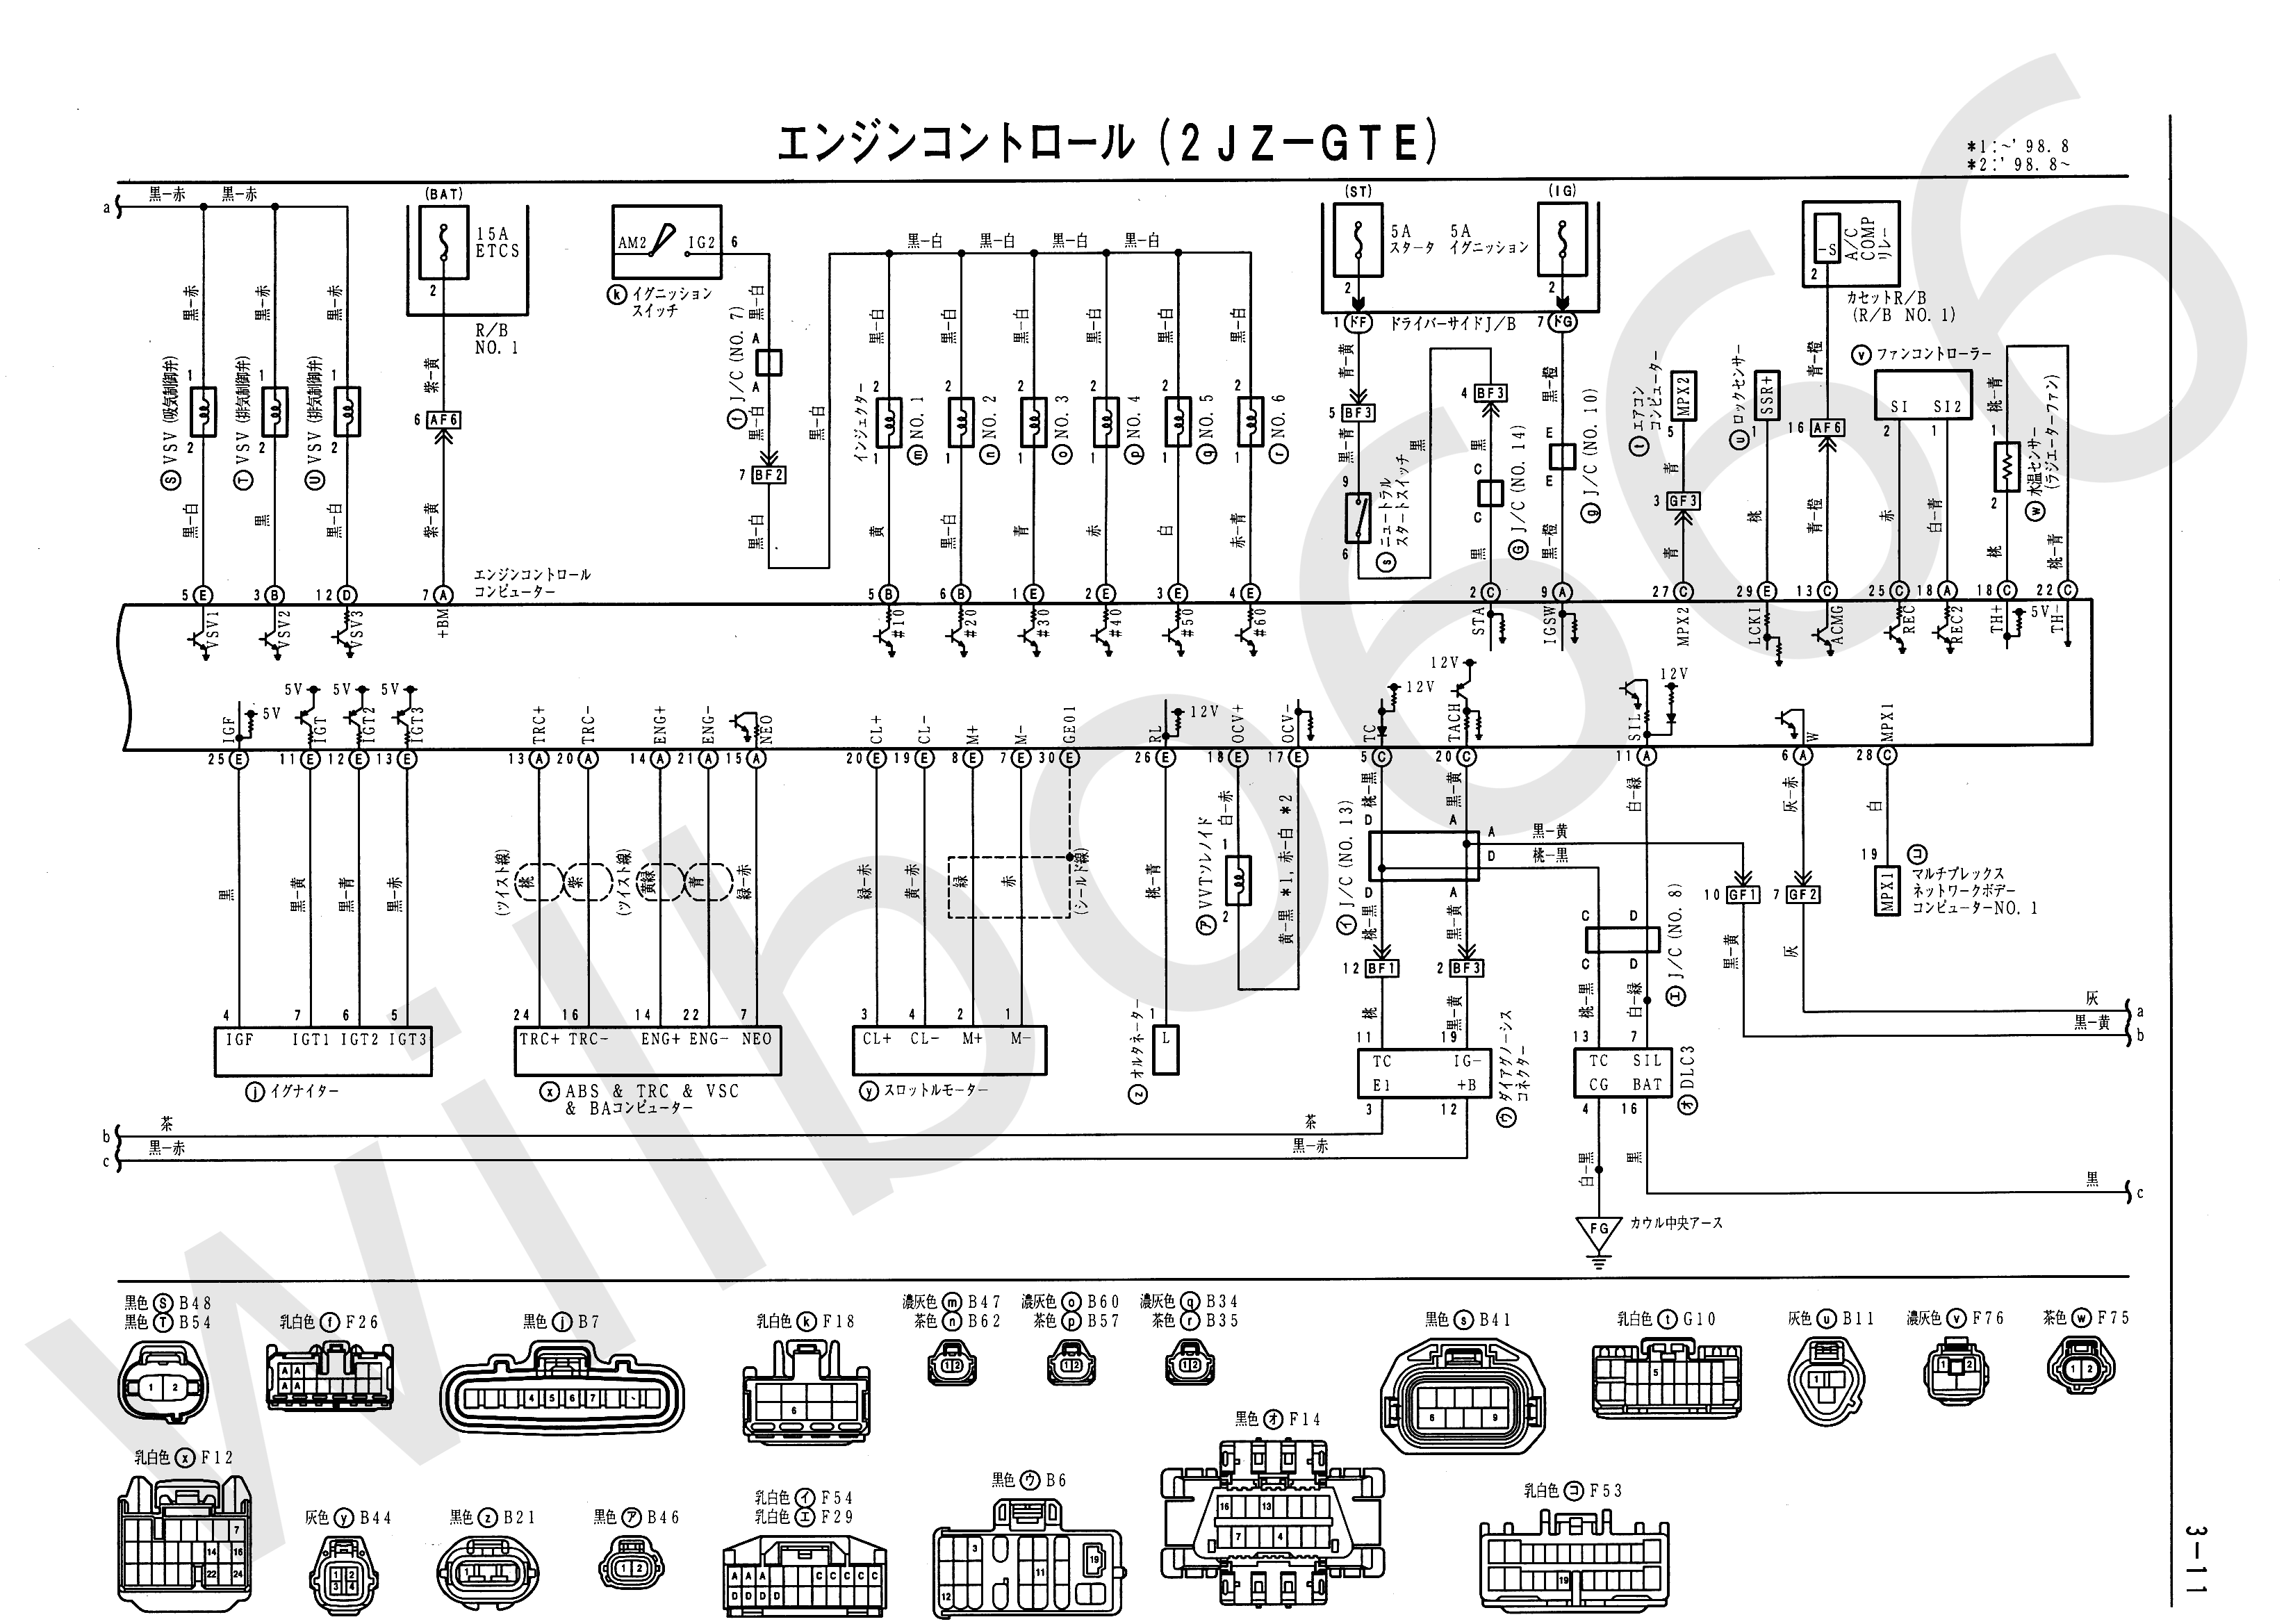 JZS161 Electrical Wiring Diagram 6748505 3 11 2jz wiring diagram basic home electrical wiring diagrams \u2022 wiring ge ignitor wiring harness at crackthecode.co